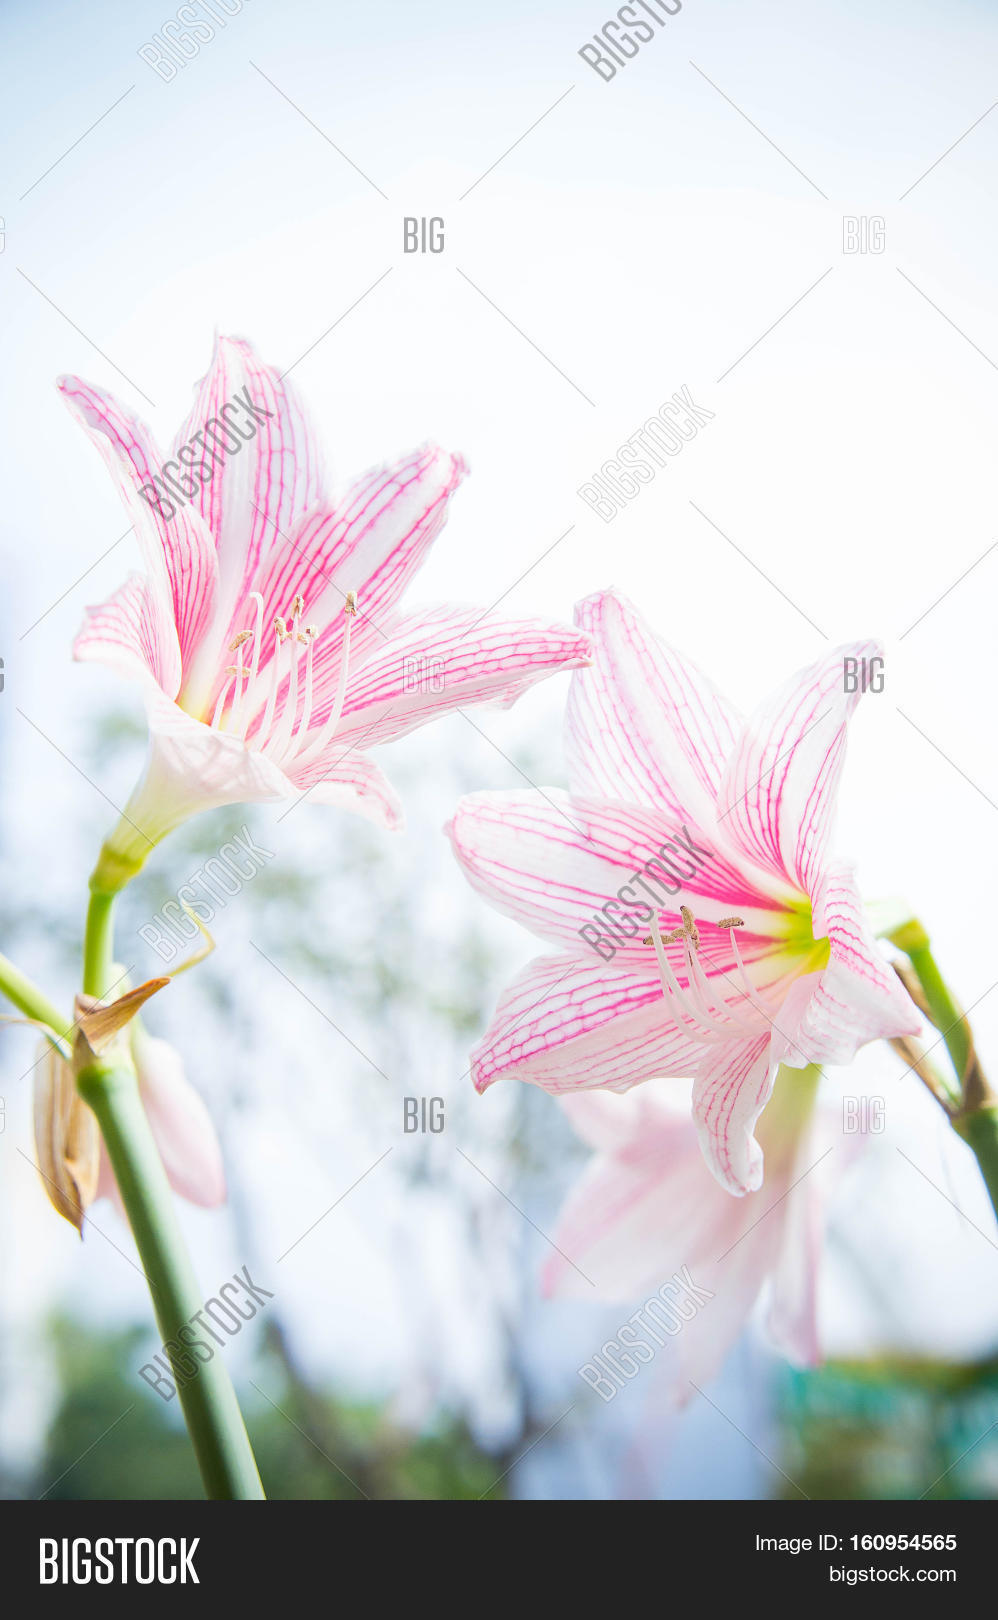 Flower hippeastrum image photo free trial bigstock flower hippeastrum looks like a lily white with pink stripes planted ornamental garden homes izmirmasajfo